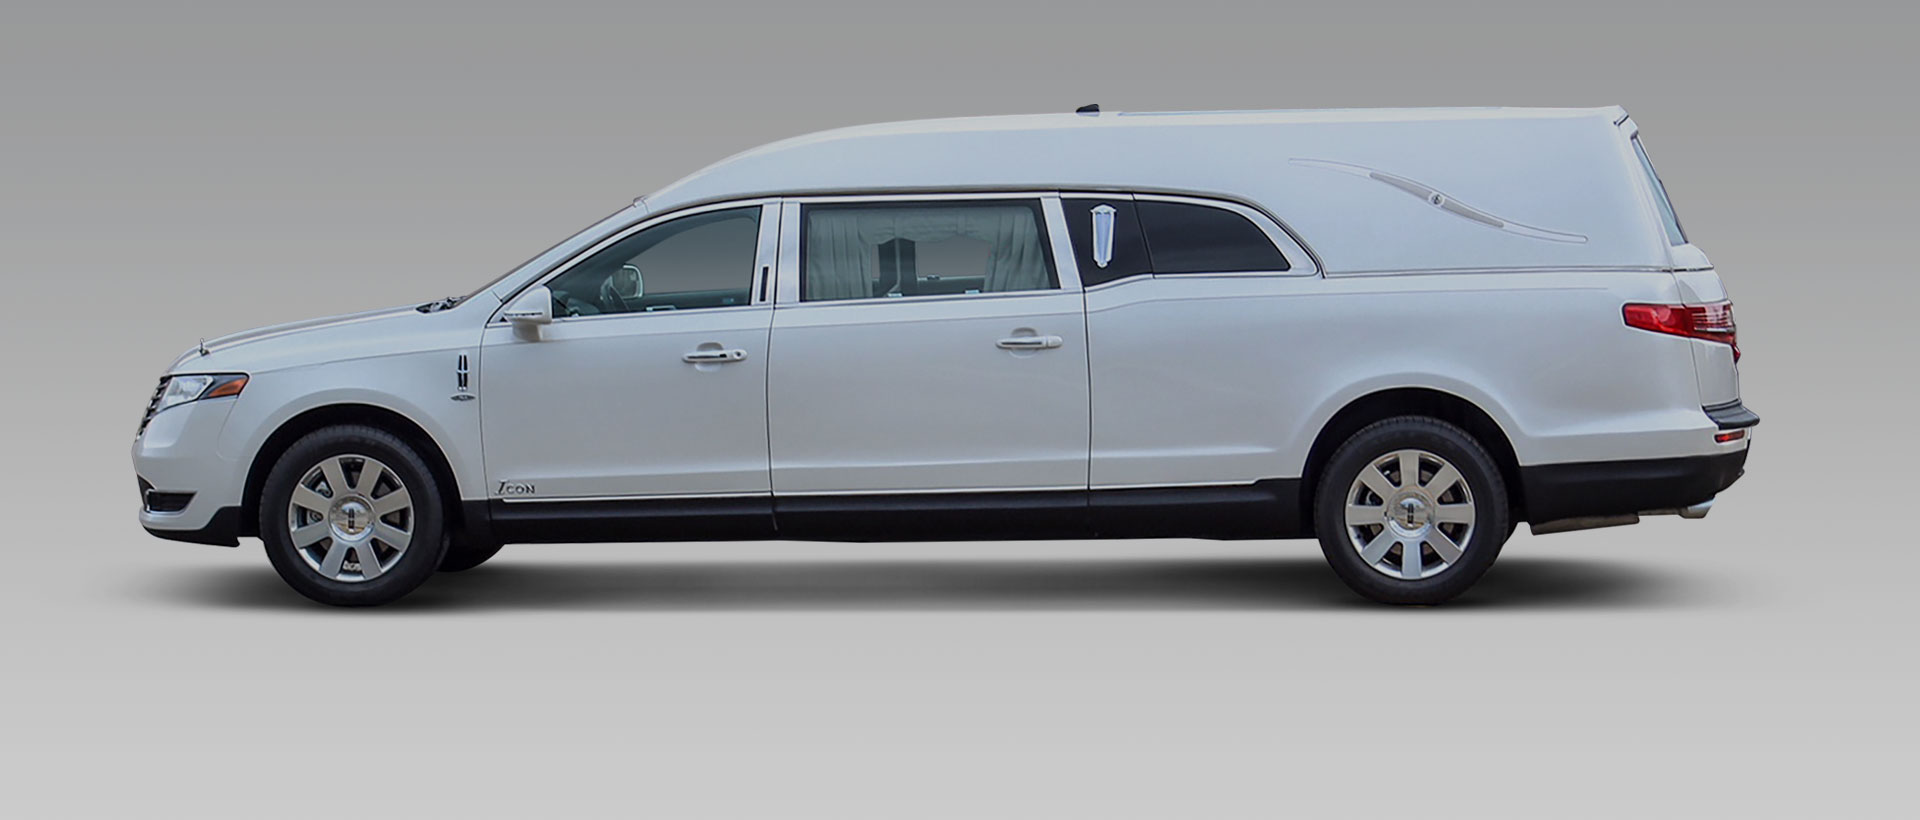 mkt zoom eagle thumb regency company coach limousine lincoln limousines